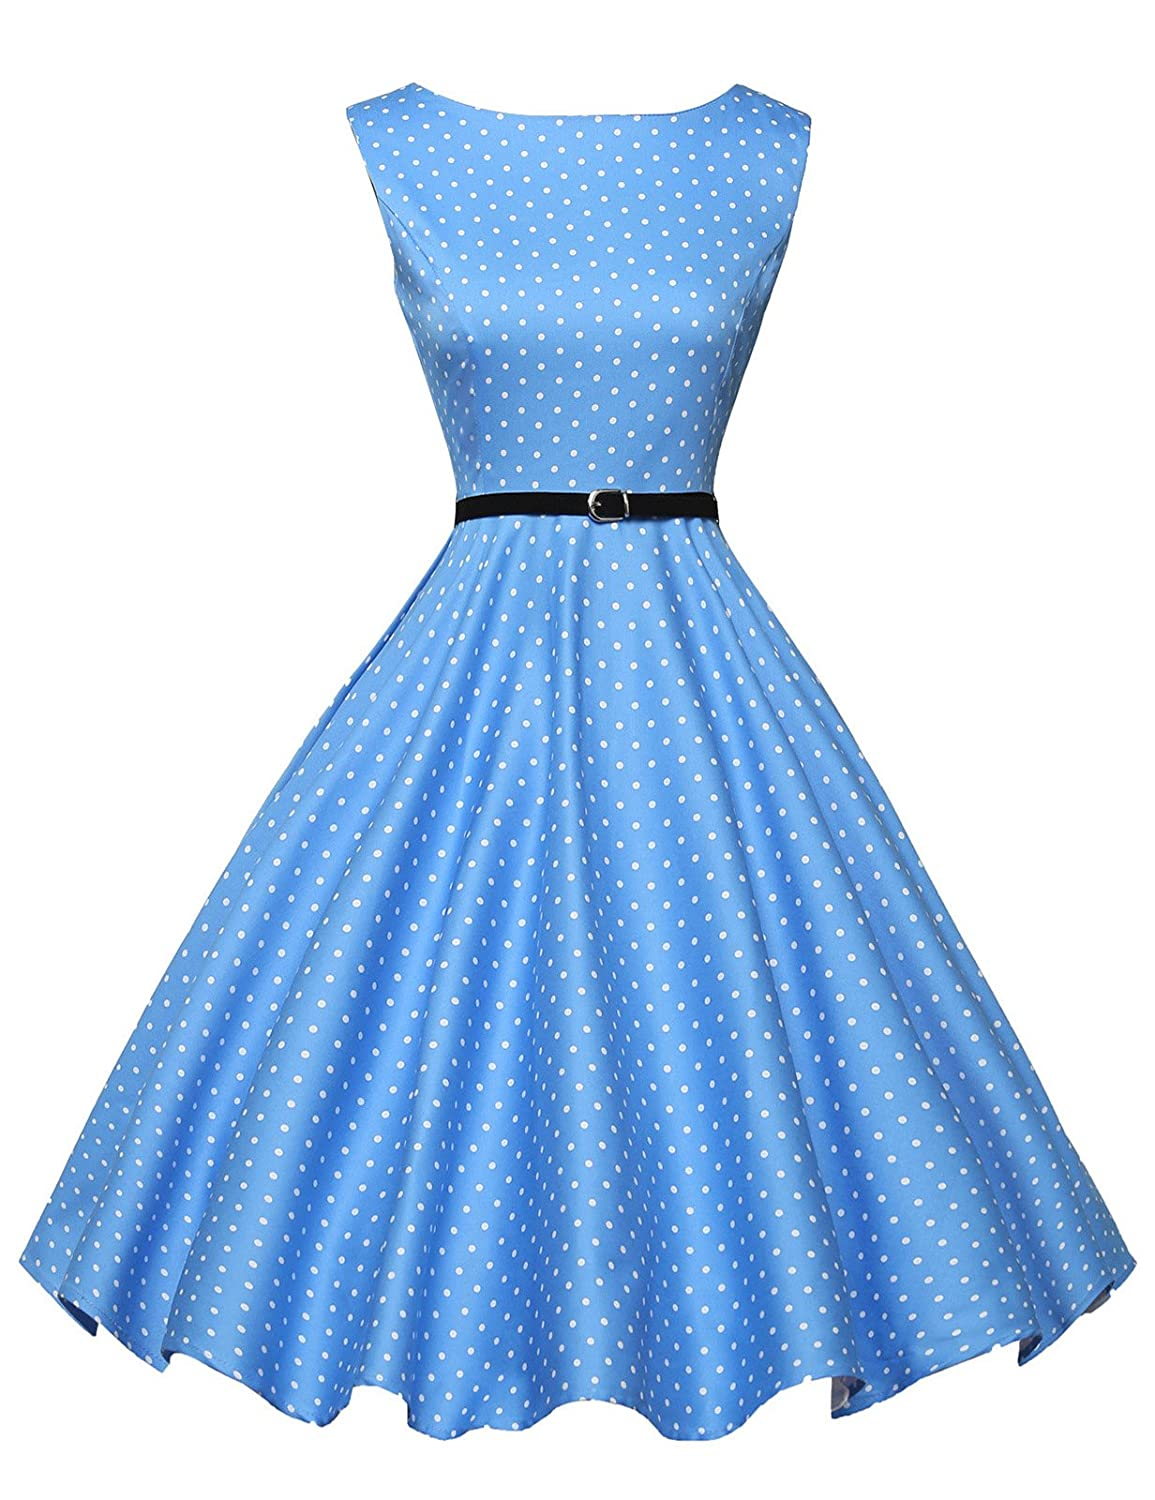 Plus Size Retro Dresses GRACE KARIN BoatNeck Sleeveless Vintage Tea Dress with Belt $30.99 AT vintagedancer.com